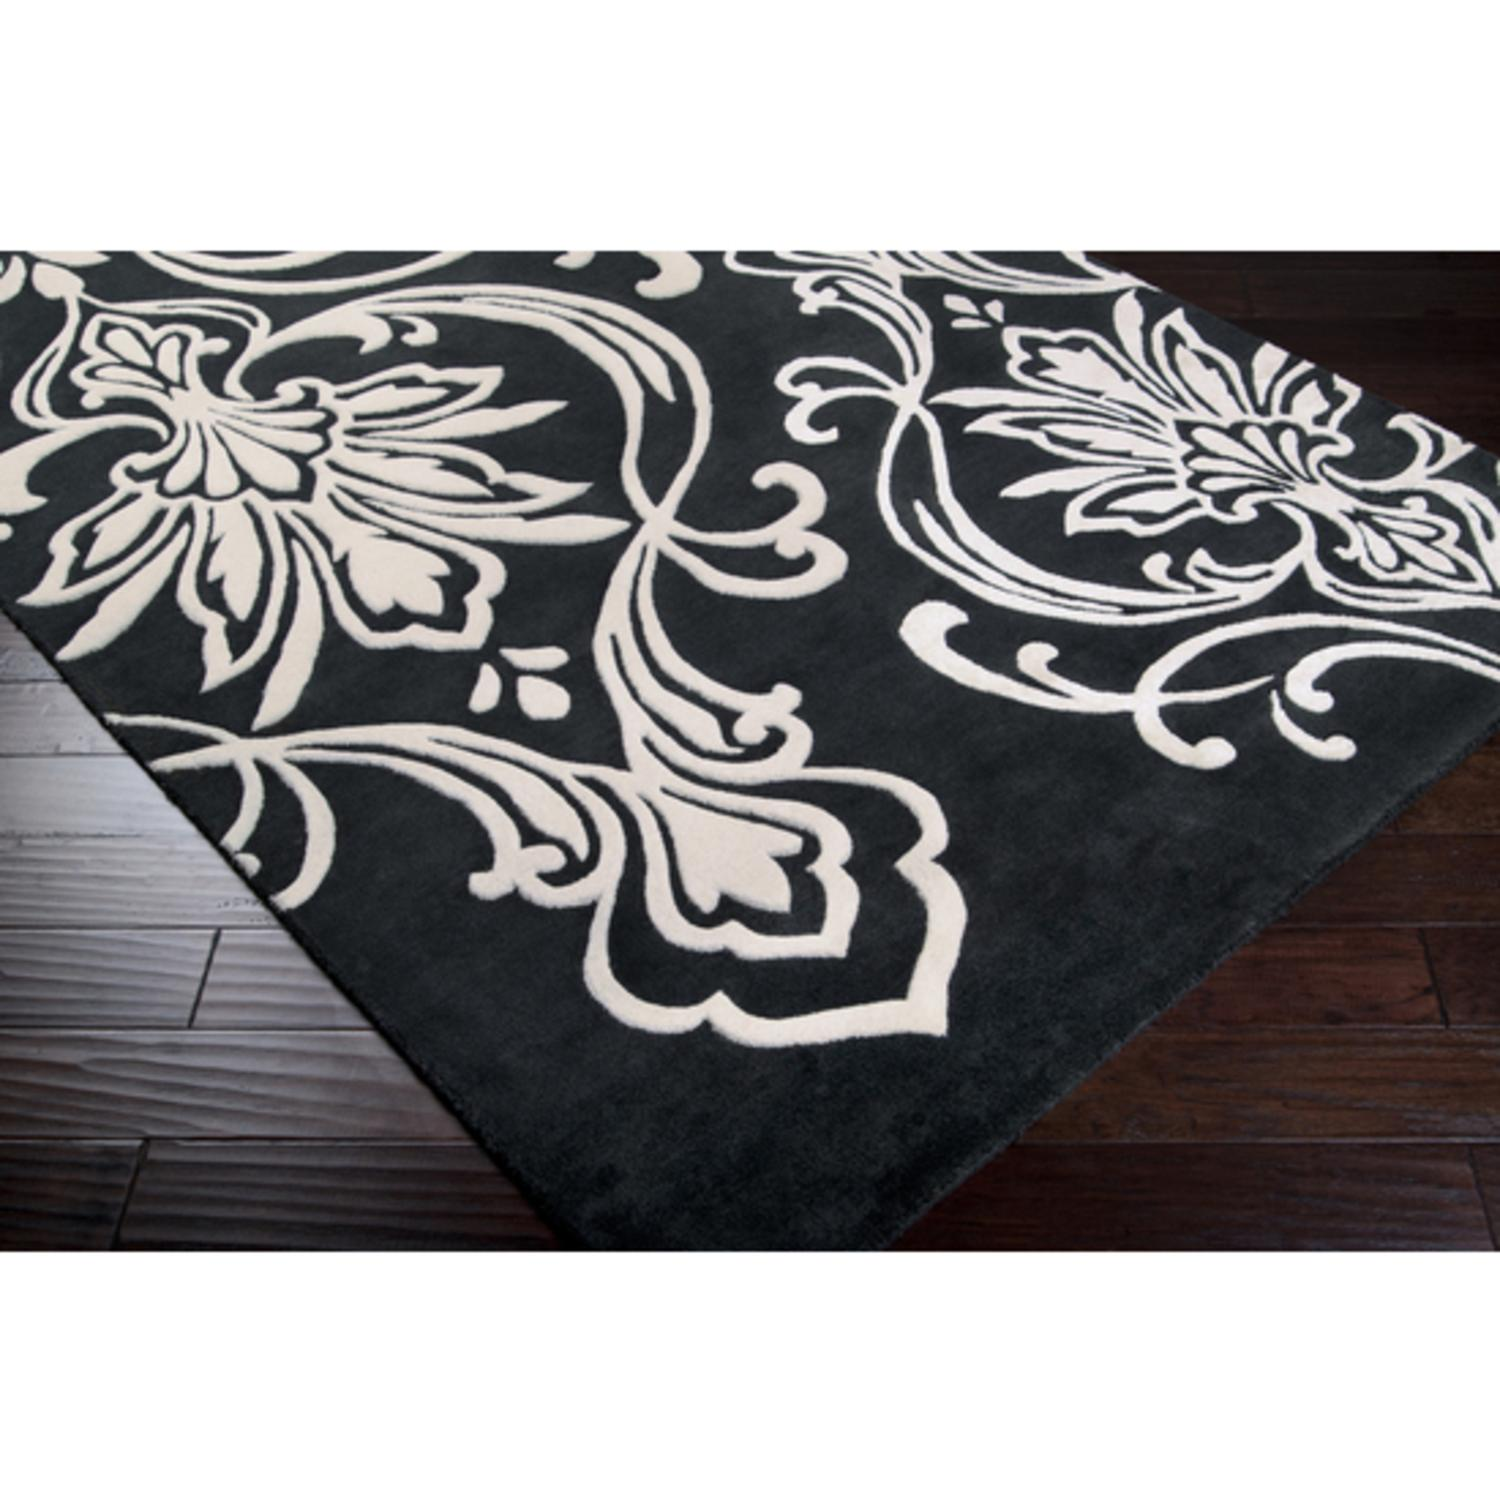 5' x 8' B��lier Bloom Black Olive and White Wool Area Throw Rug